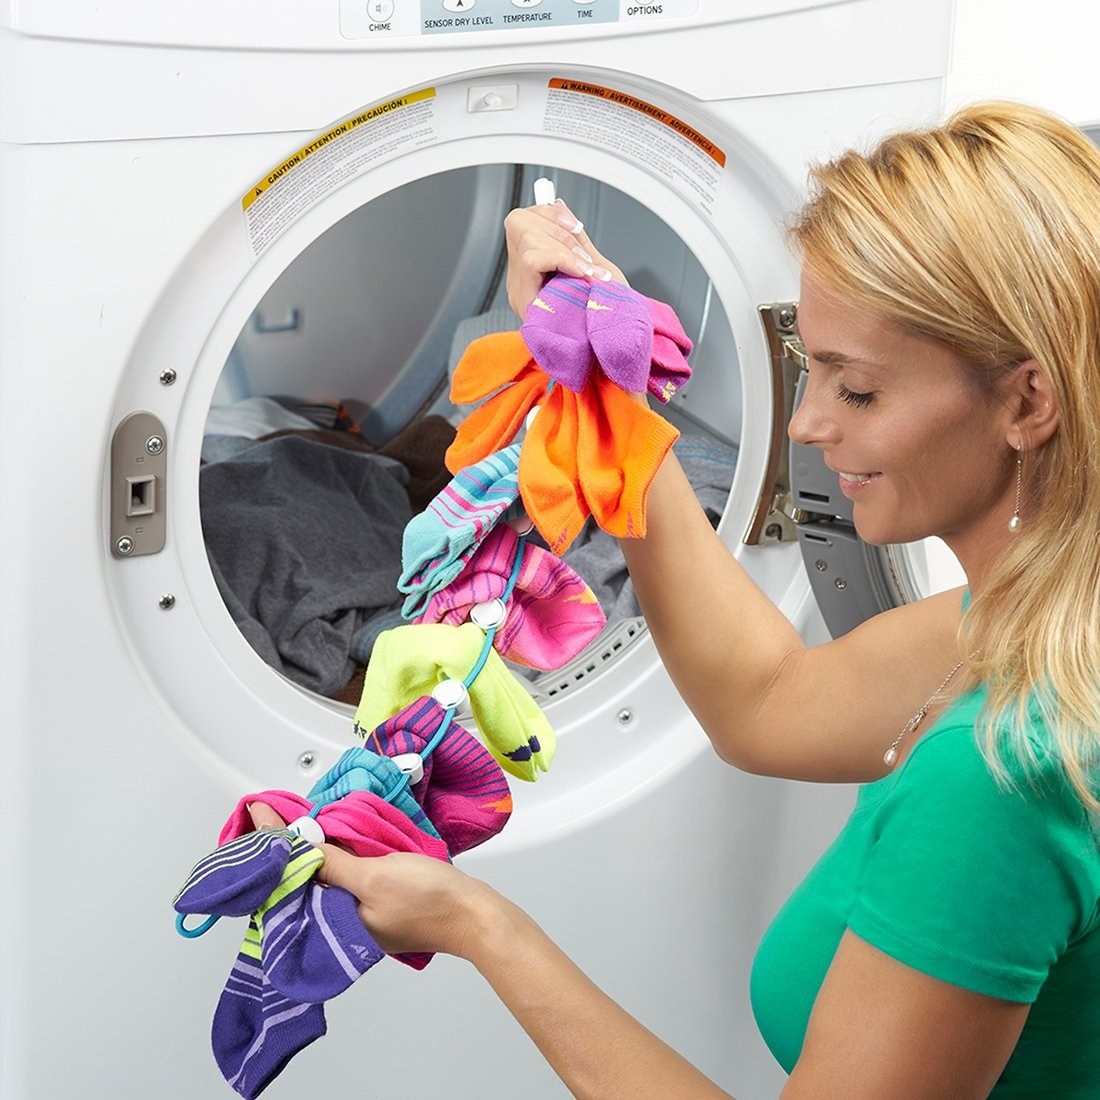 Model holding the long wire SockDock with circles to attach socks, filled with sock pairs next to a washing machine